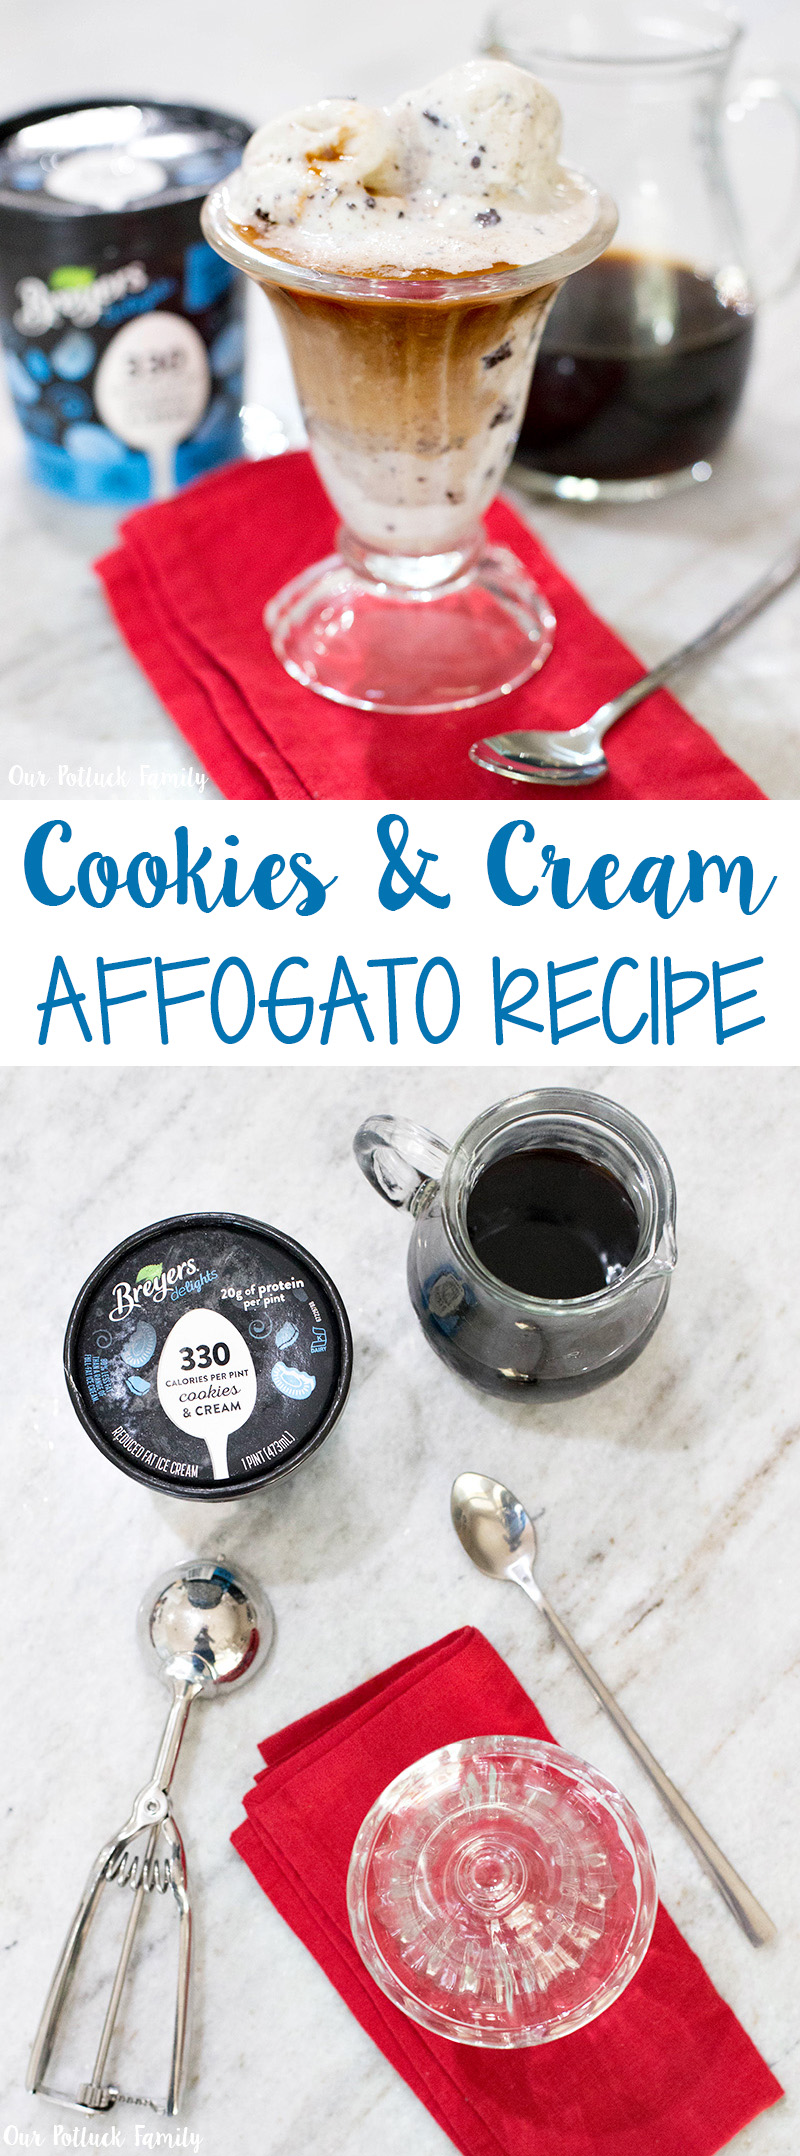 cookies ice cream affogato